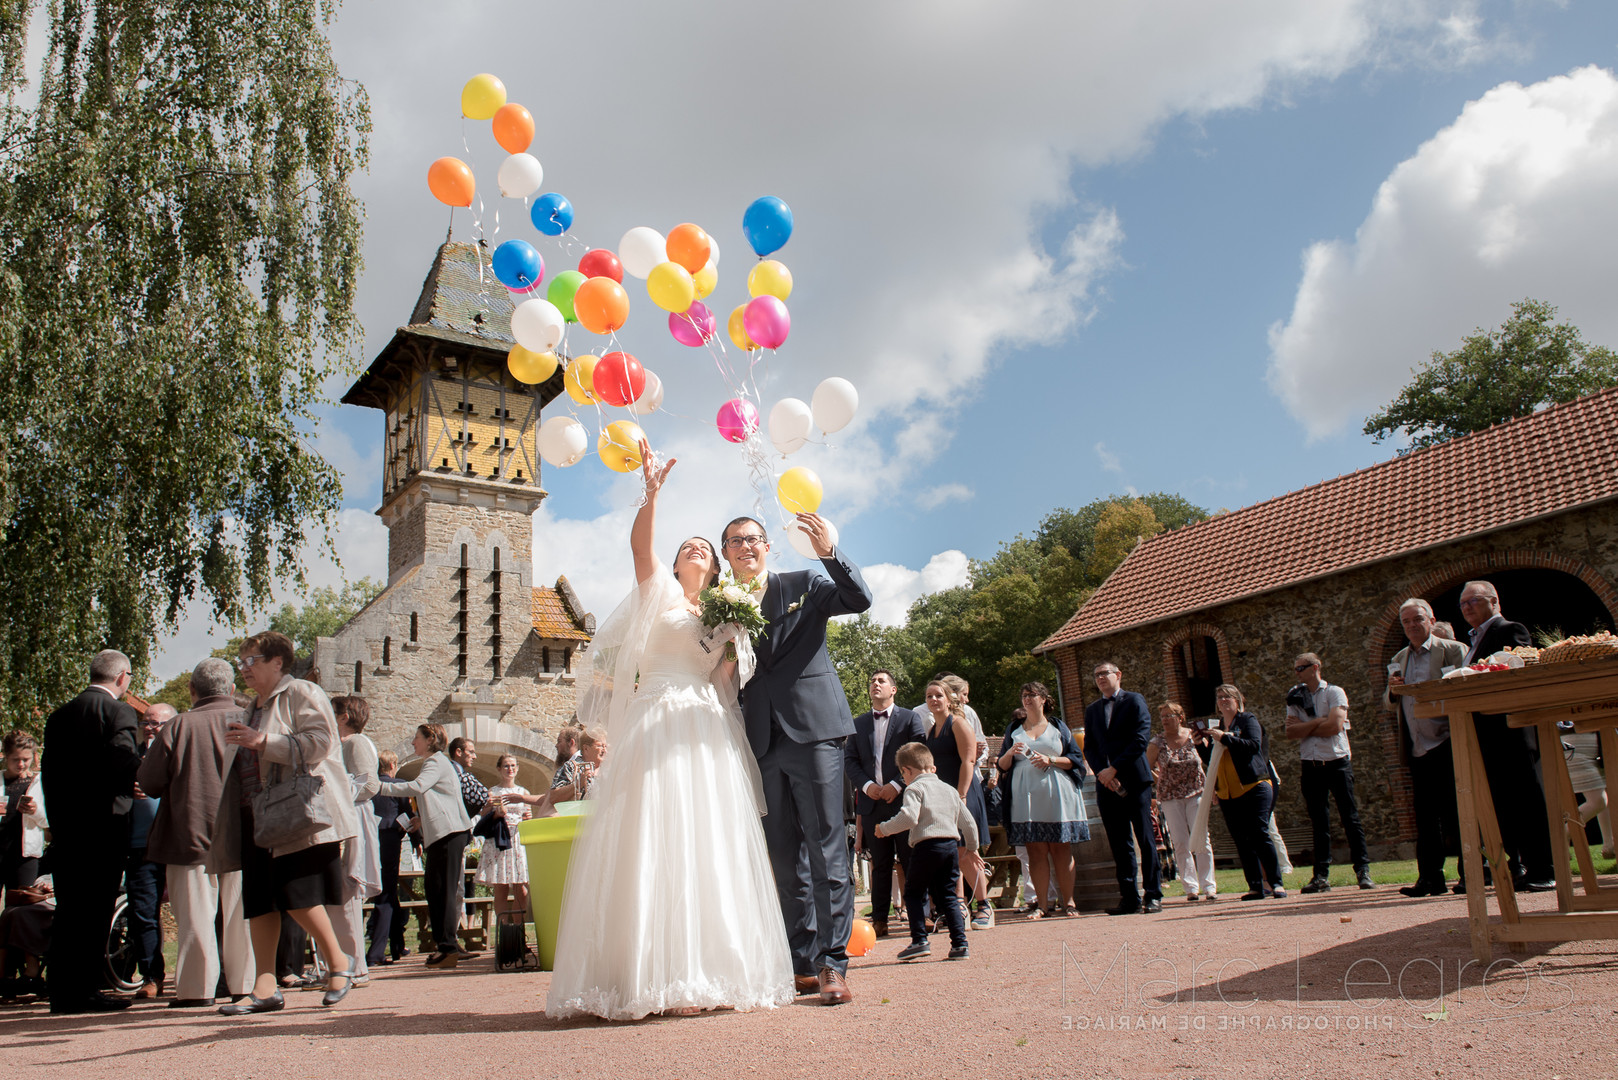 Photographe couleur mariage Angers France